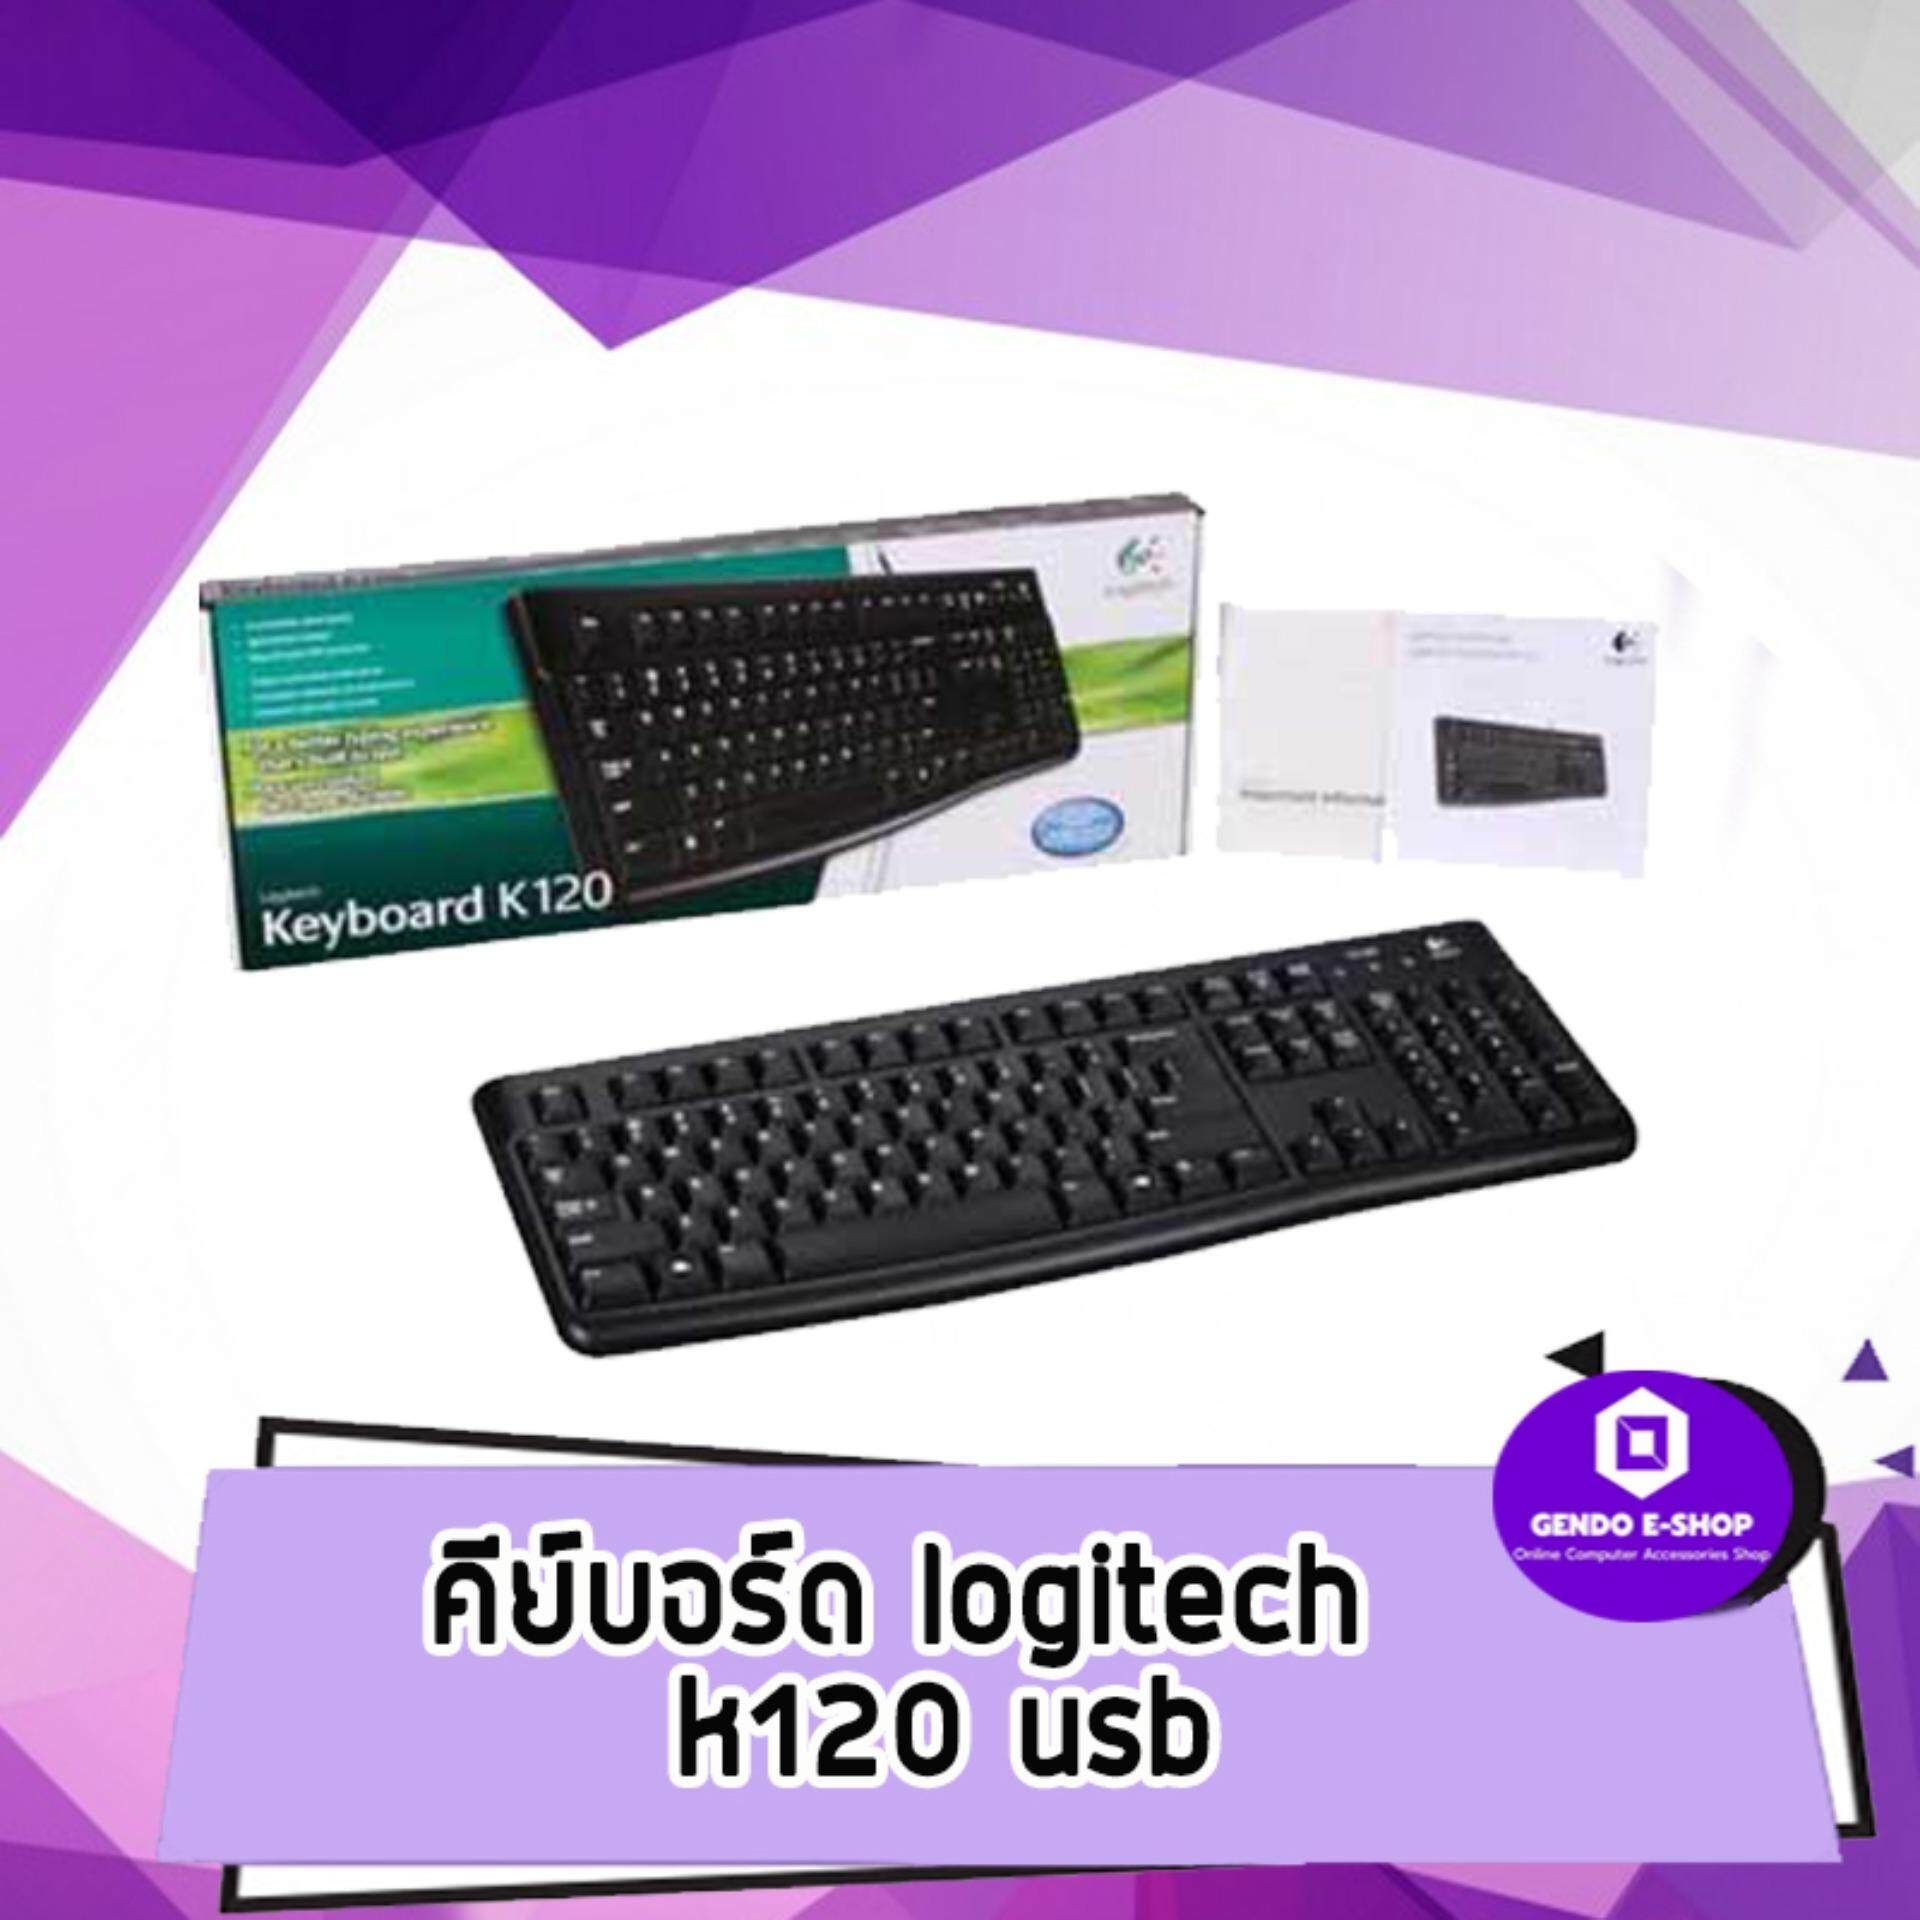 Sell Logitech Keyboard Usb Cheapest Best Quality Th Store K120 Blackthb429 Thb 439